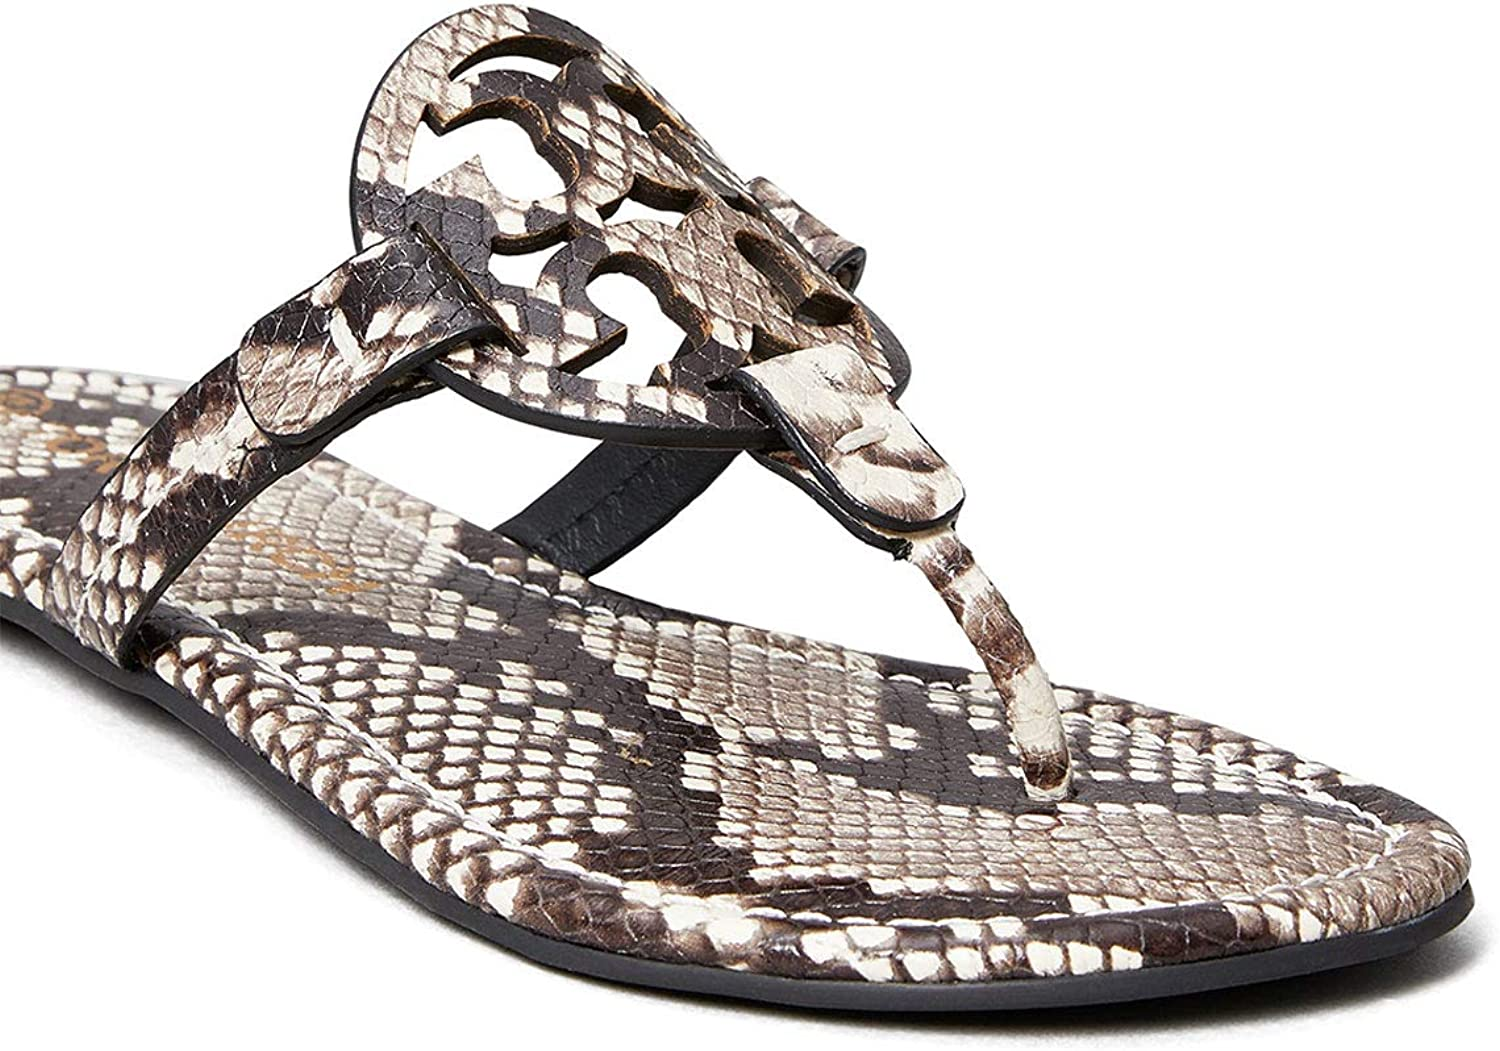 Tory Burch Women's Miller Stamped Printed Today's only Leather Sandals Max 75% OFF Snake